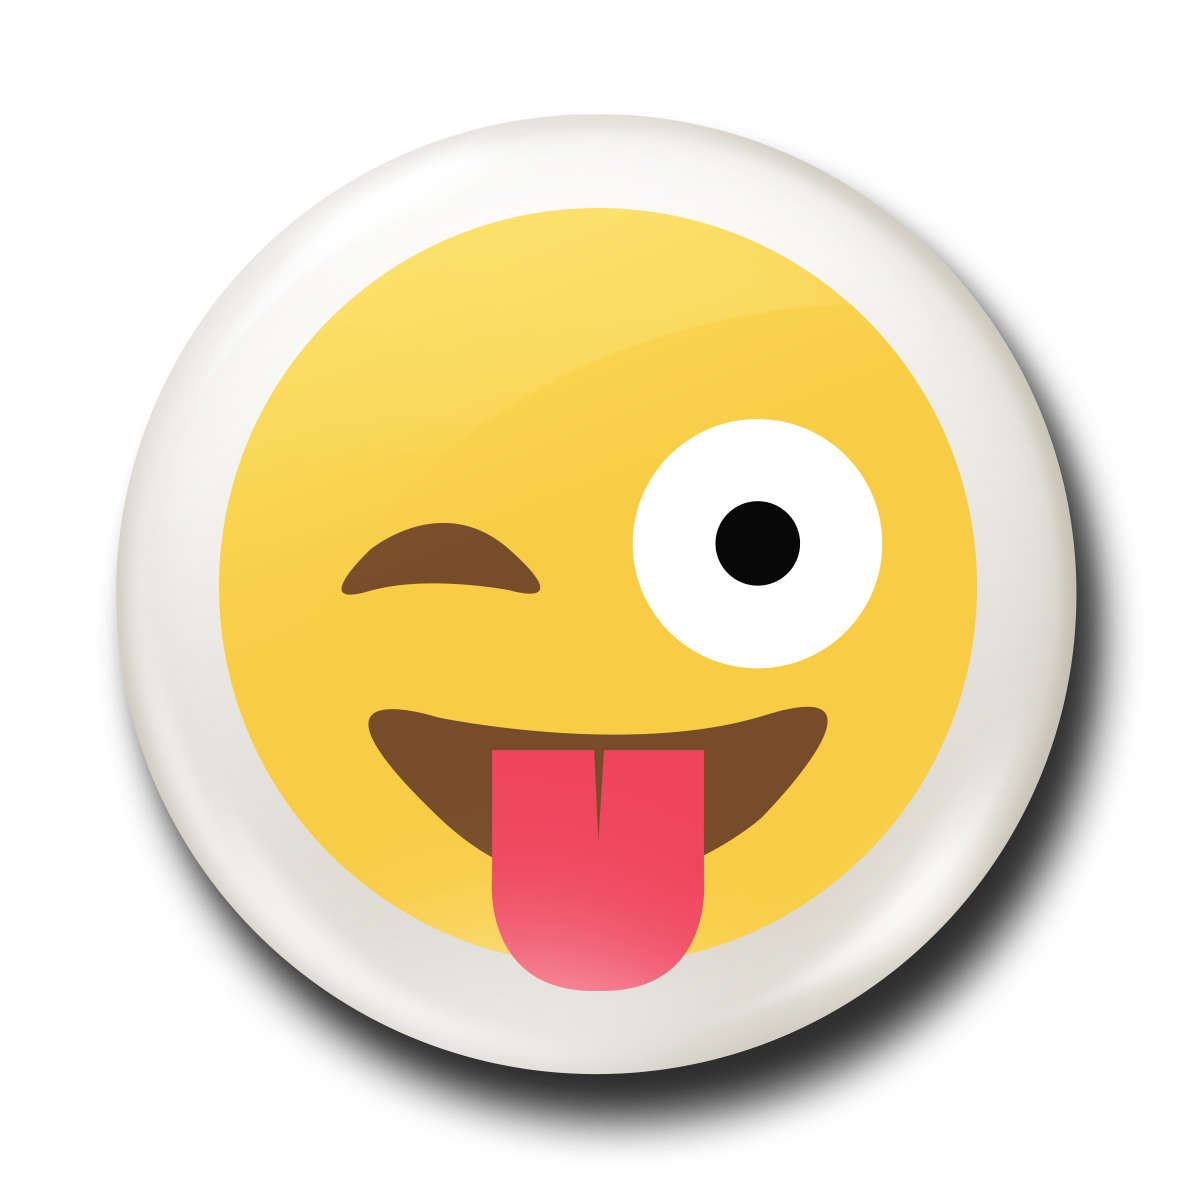 Tongue out emoji png. Stick the badge works